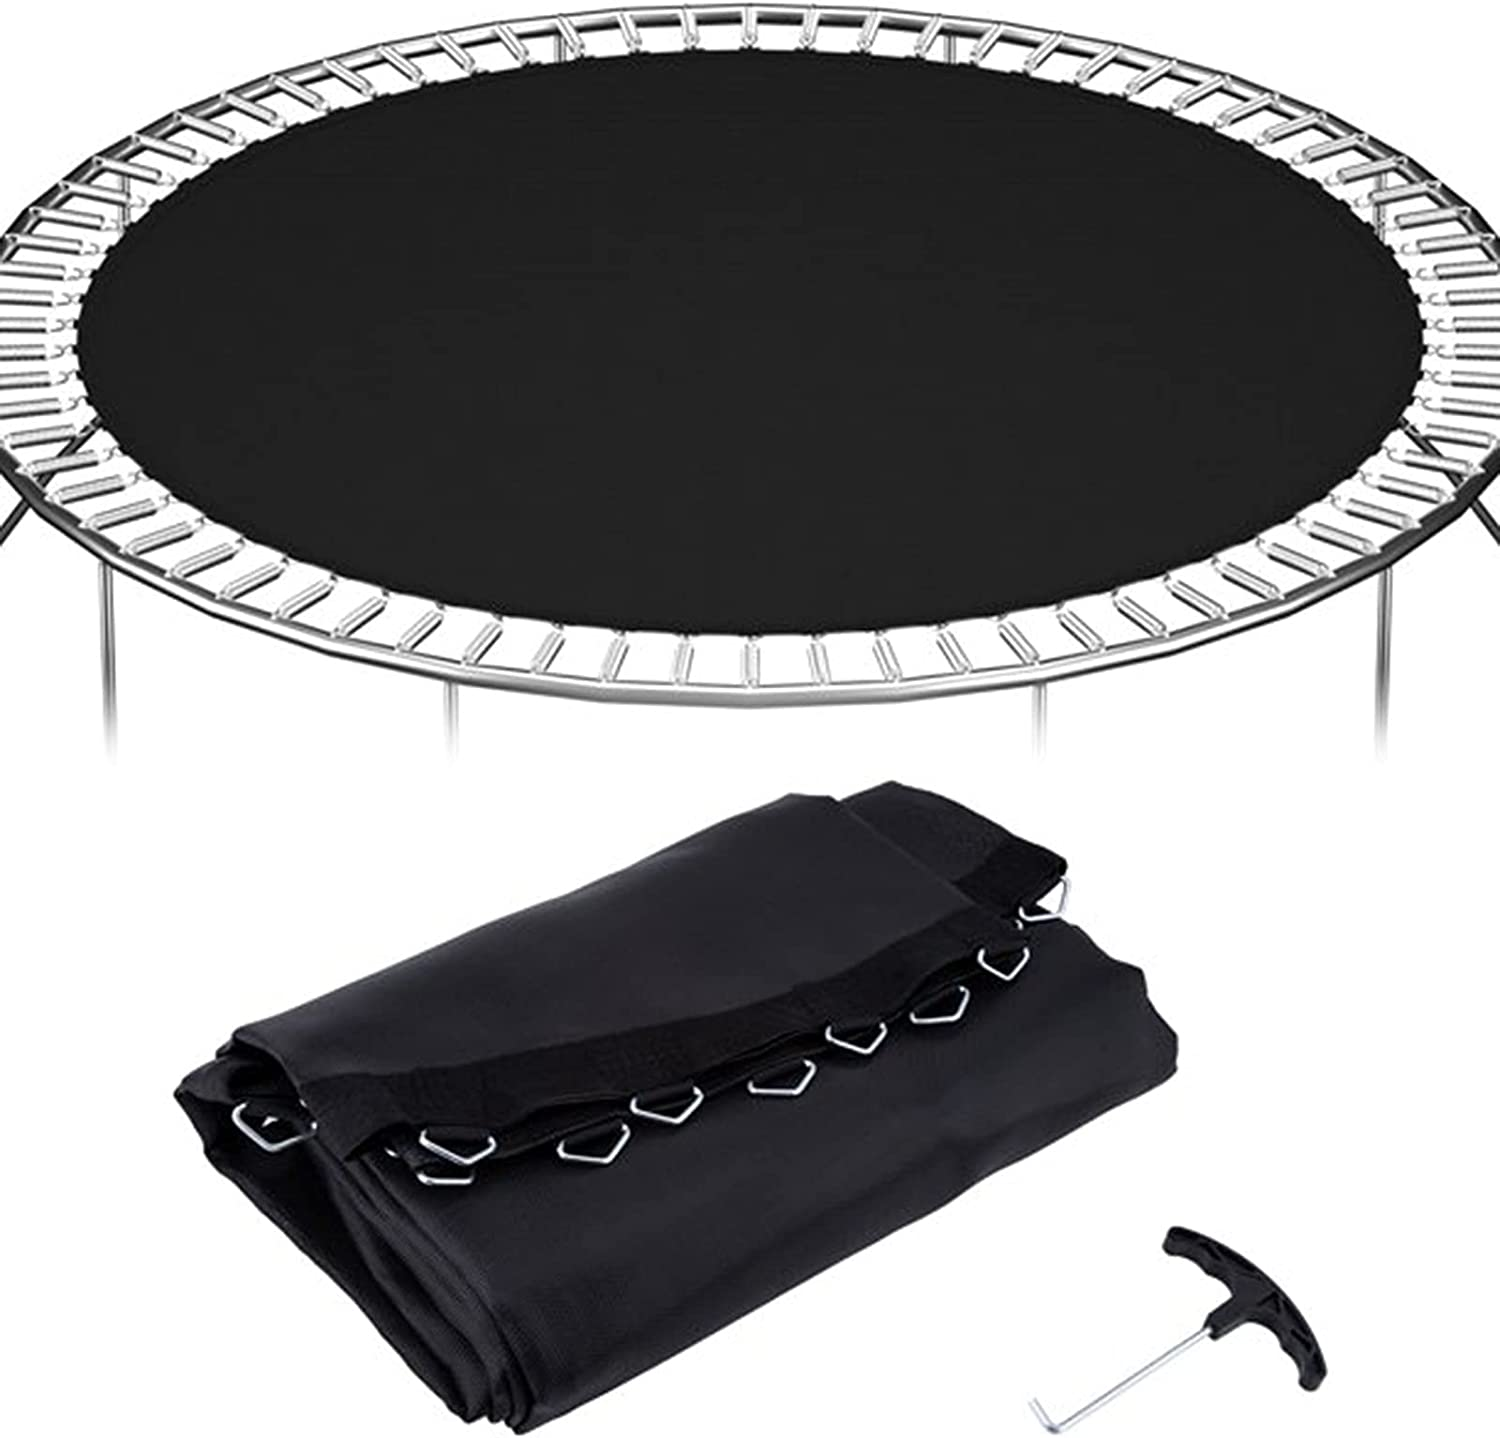 Phoenix Mall LIANGX Jumping At the price of surprise Mat for 14' Replacement 6ft~16ft Round Trampoline